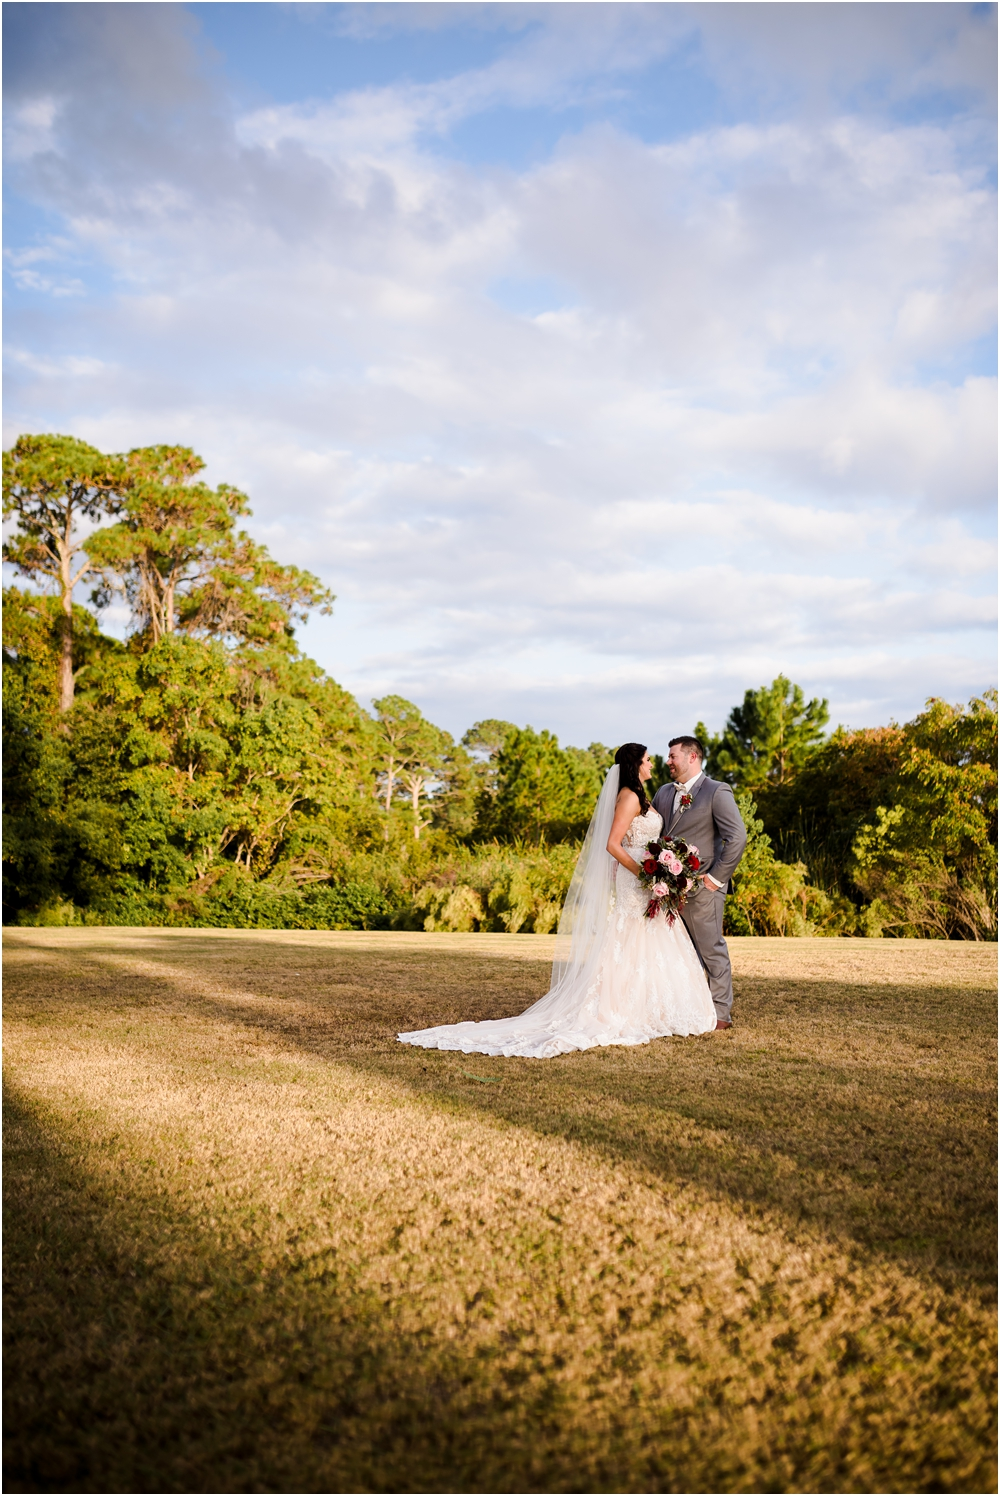 imhof-sheraton-panama-city-beach-florida-wedding-photographer-kiersten-grant-103.jpg